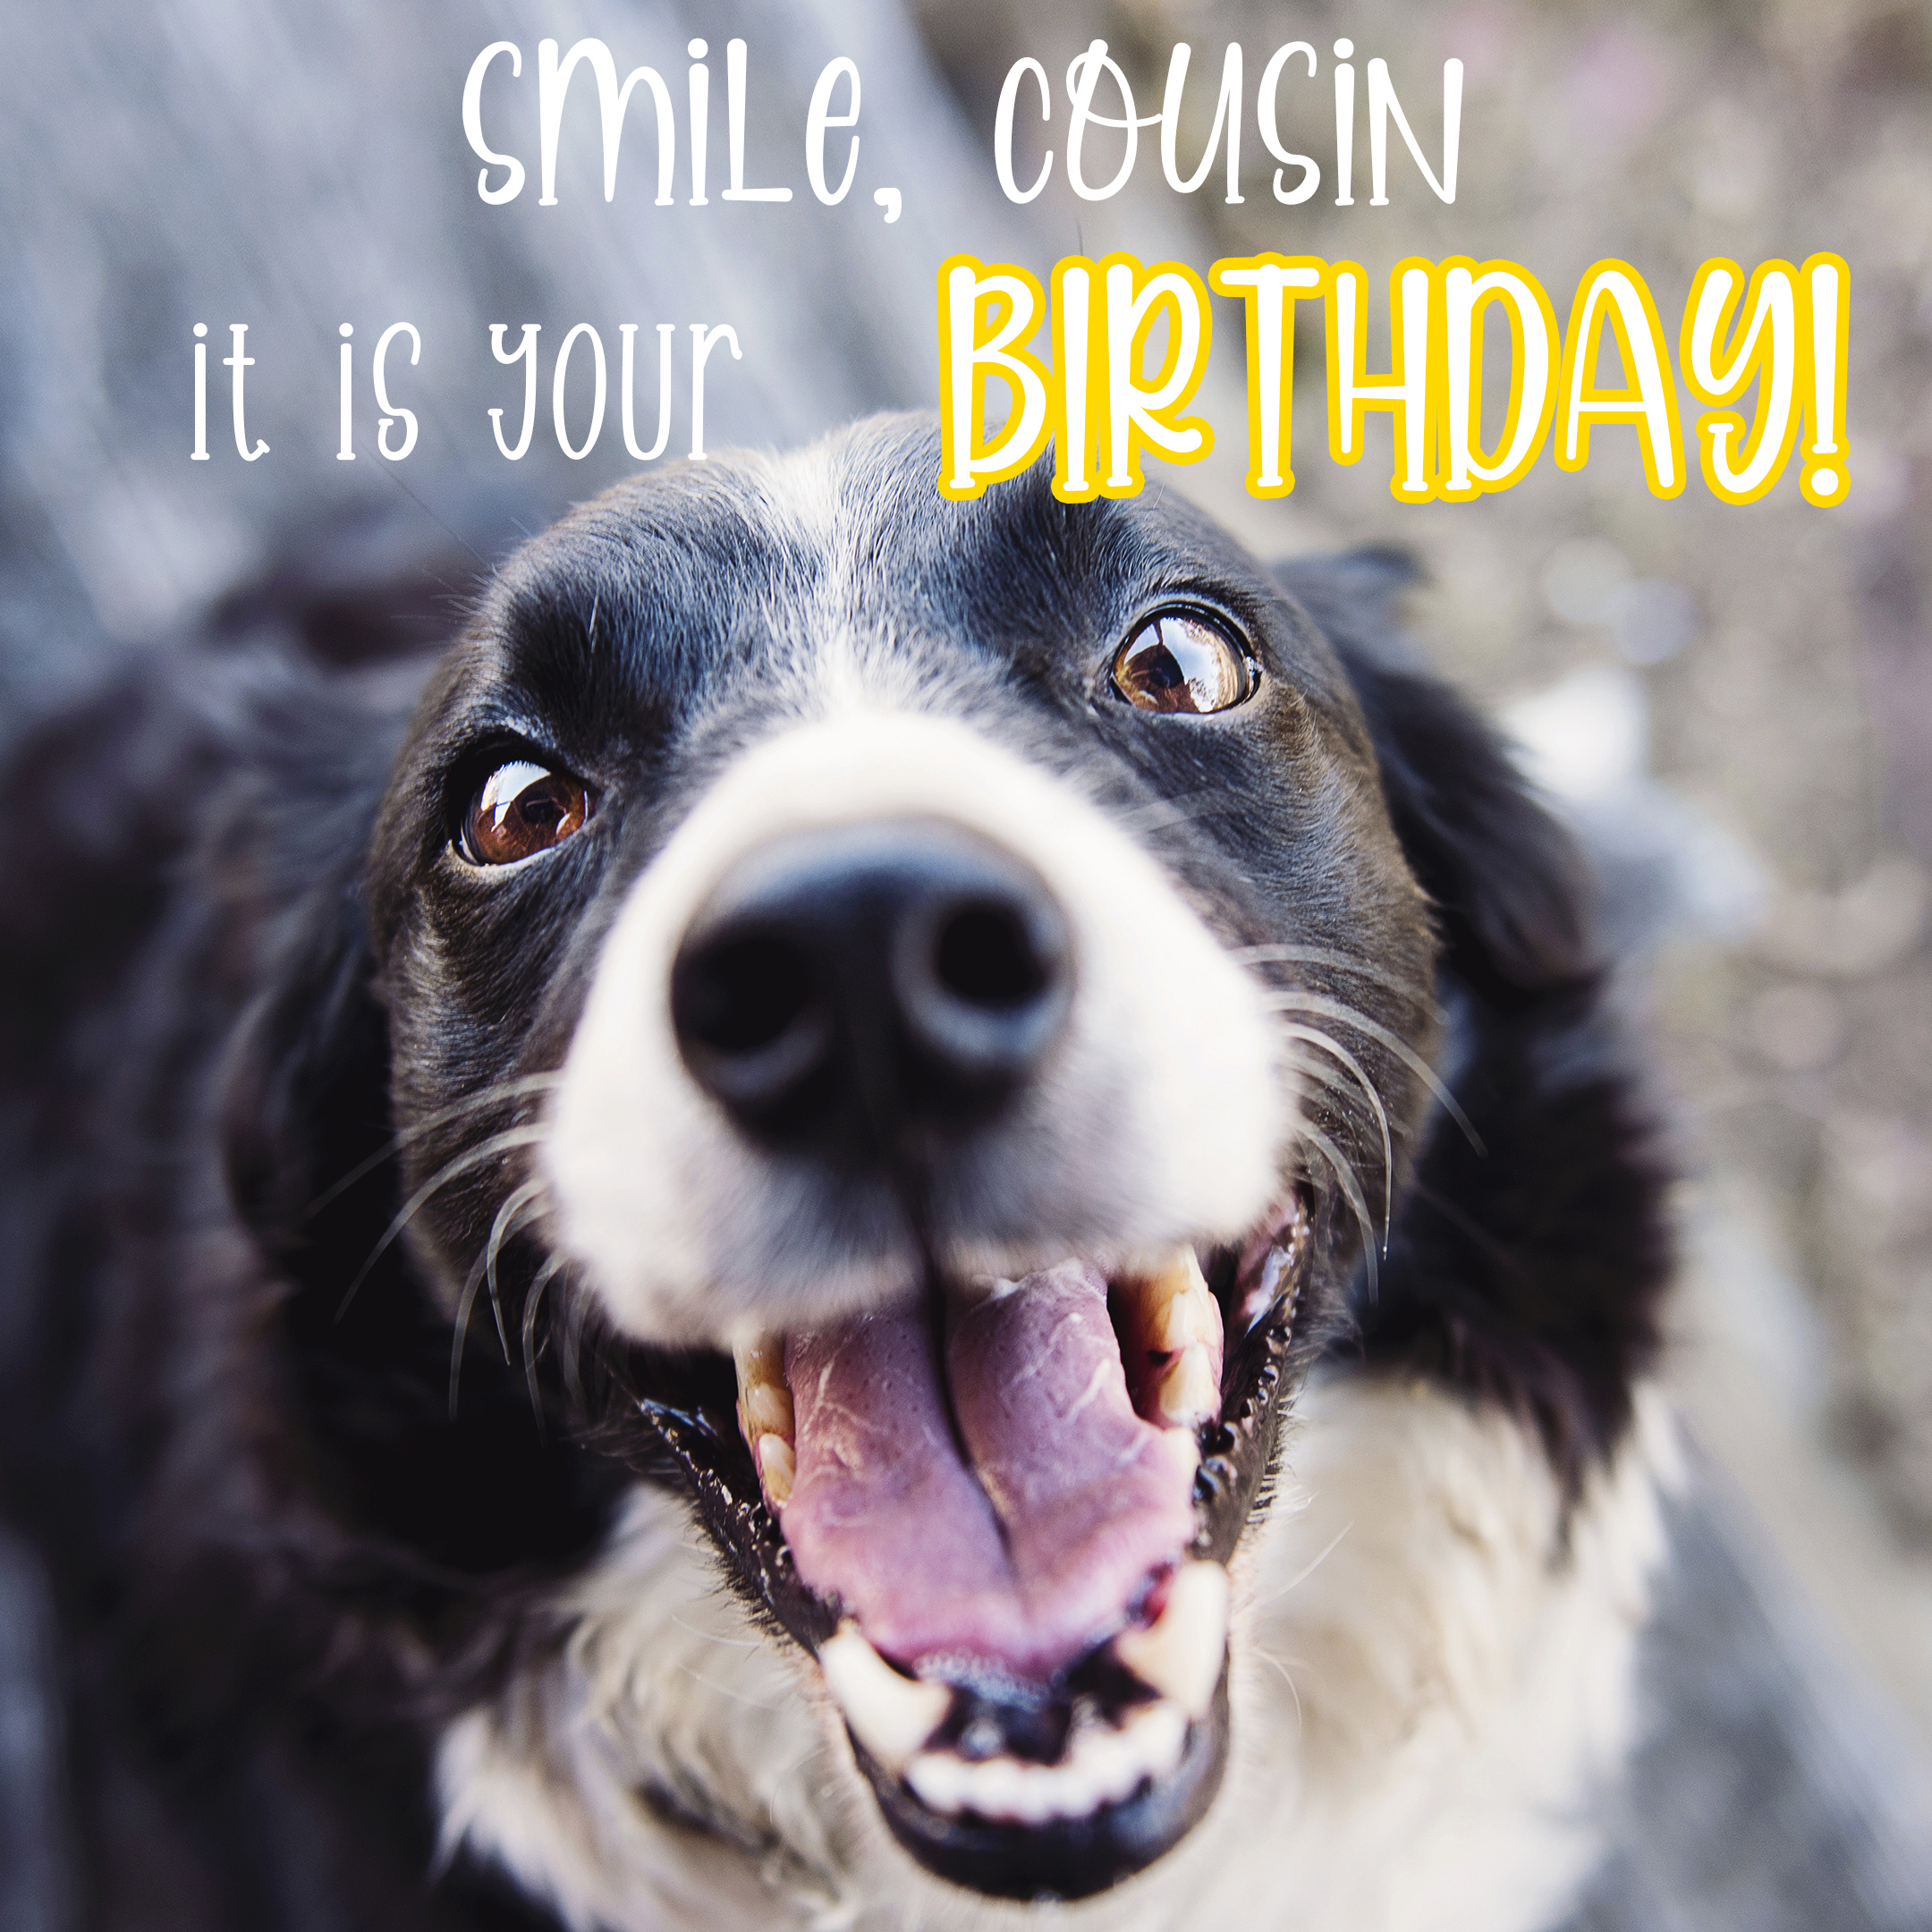 Free Funny Happy Birthday Image For Cousin With Dog - birthdayimg.com